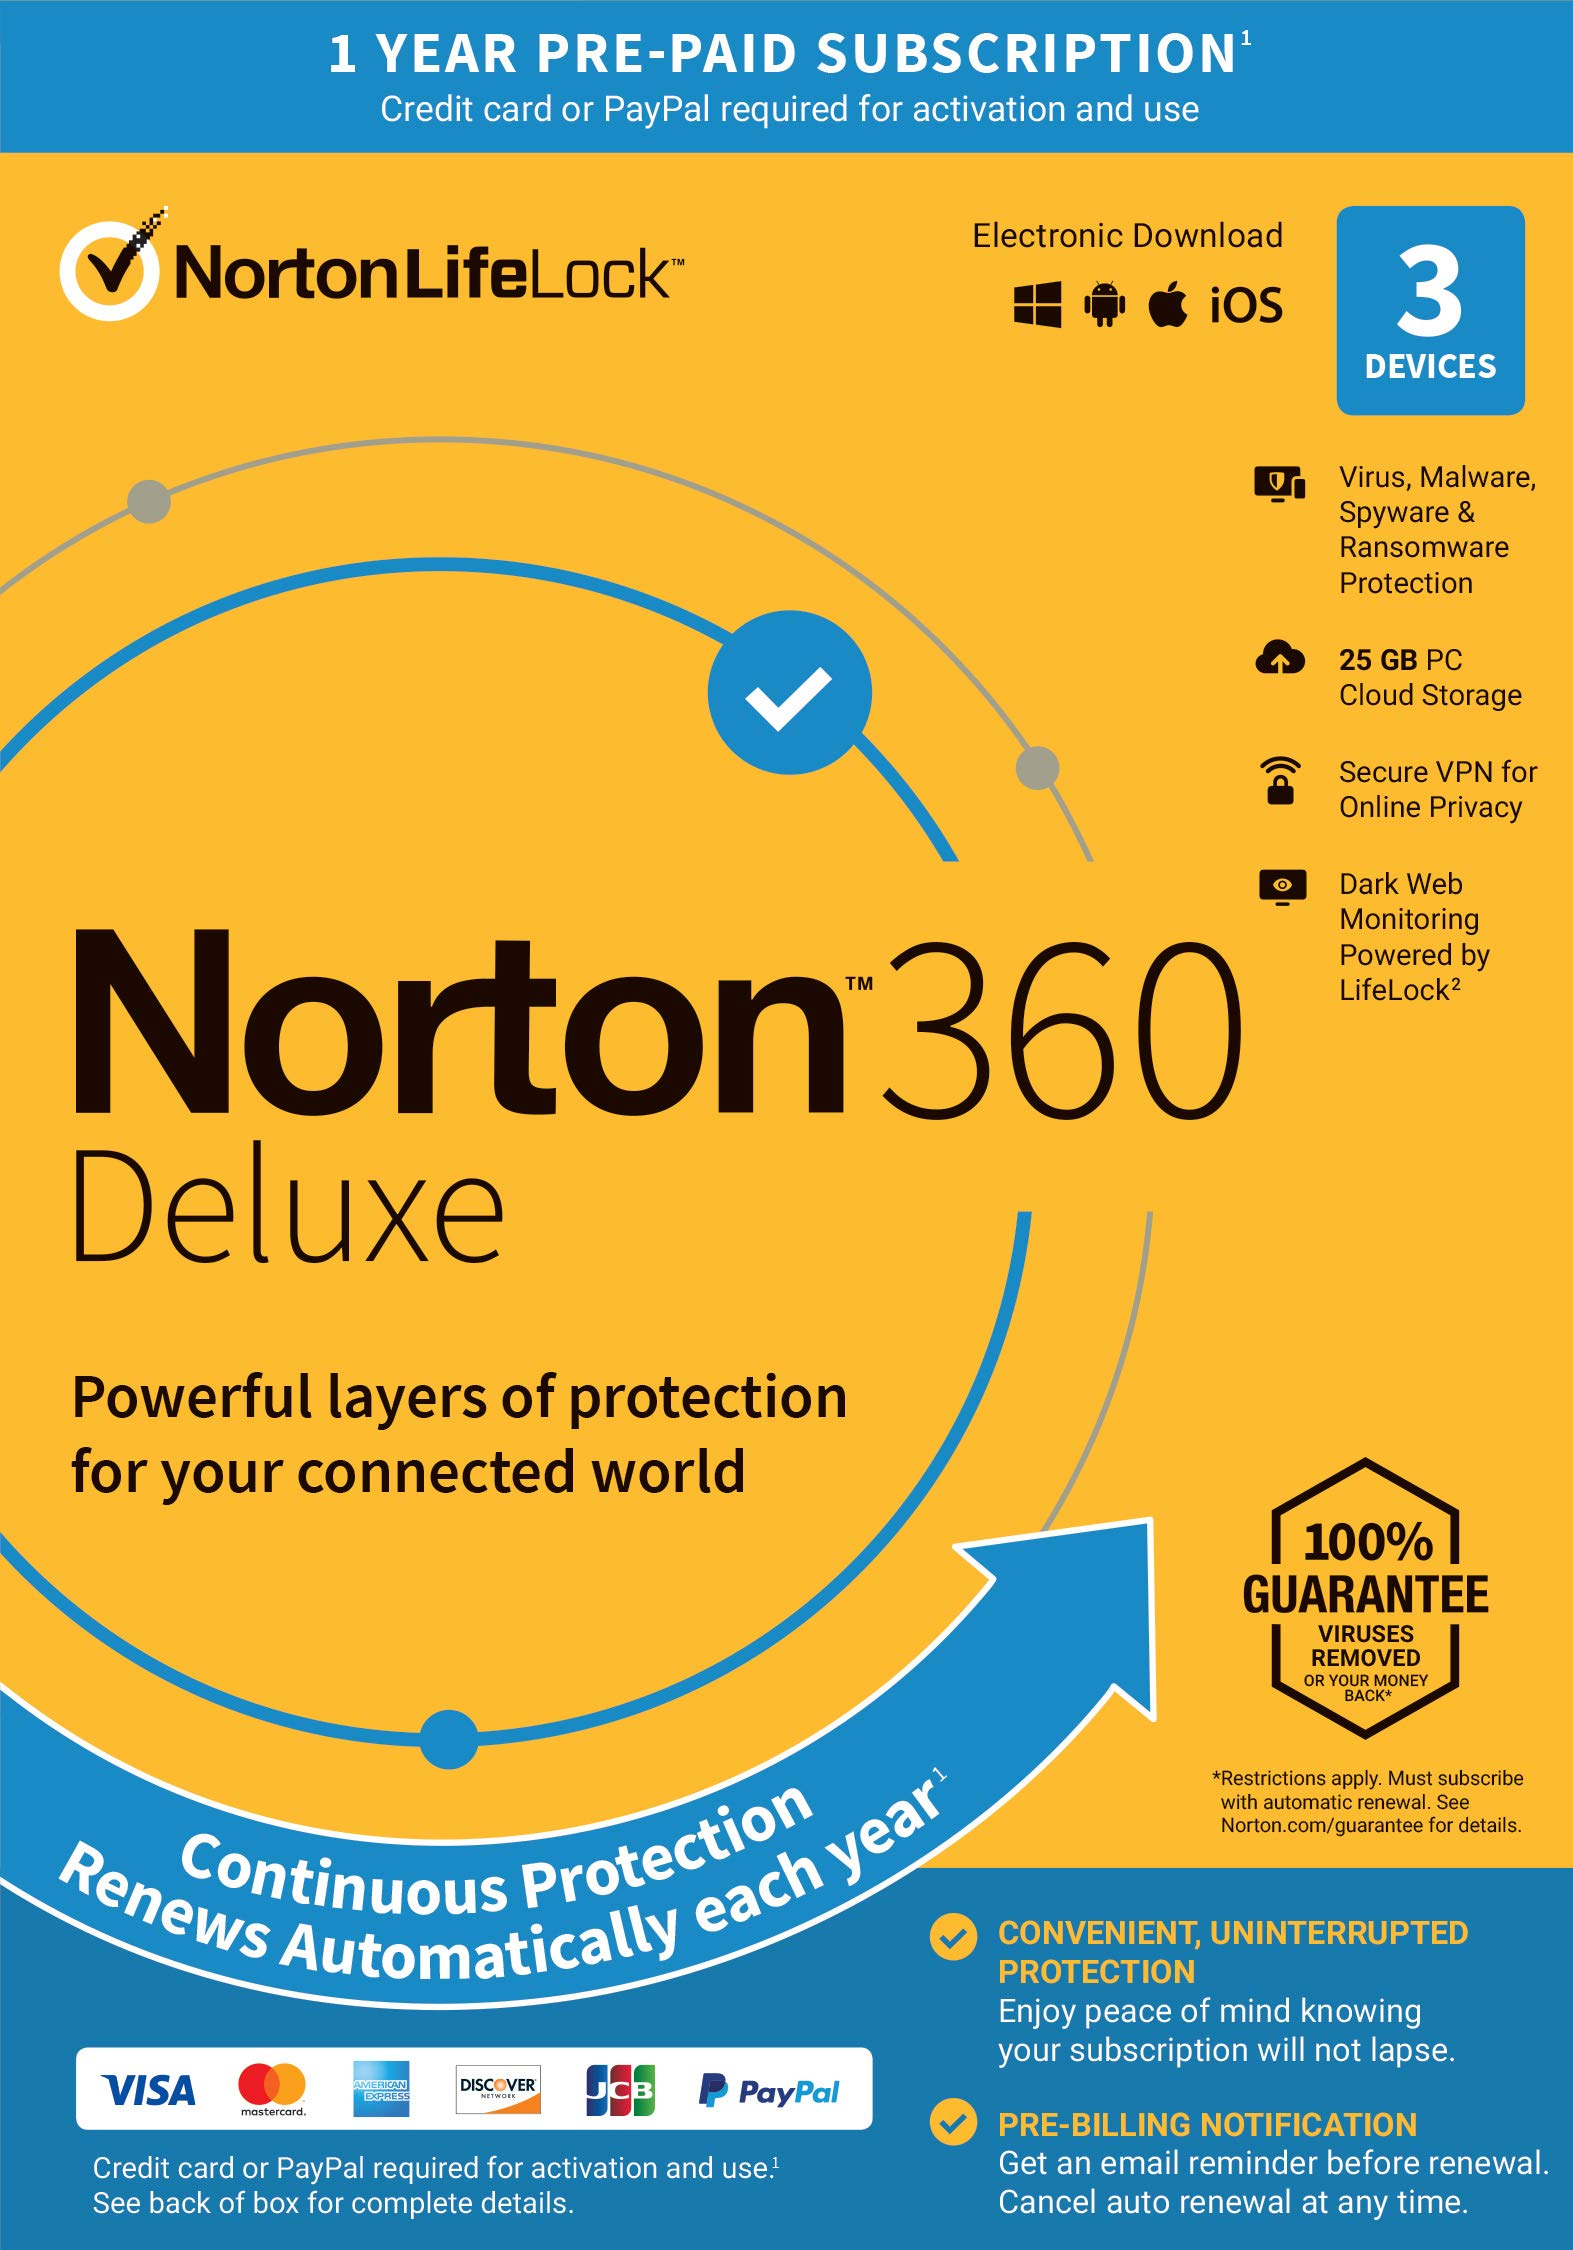 Norton 360 Deluxe  Antivirus software for 3 Devices with Auto Renewal - Includes VPN, PC Cloud Backup & Dark Web Monitoring powered by LifeLock [Key Card]